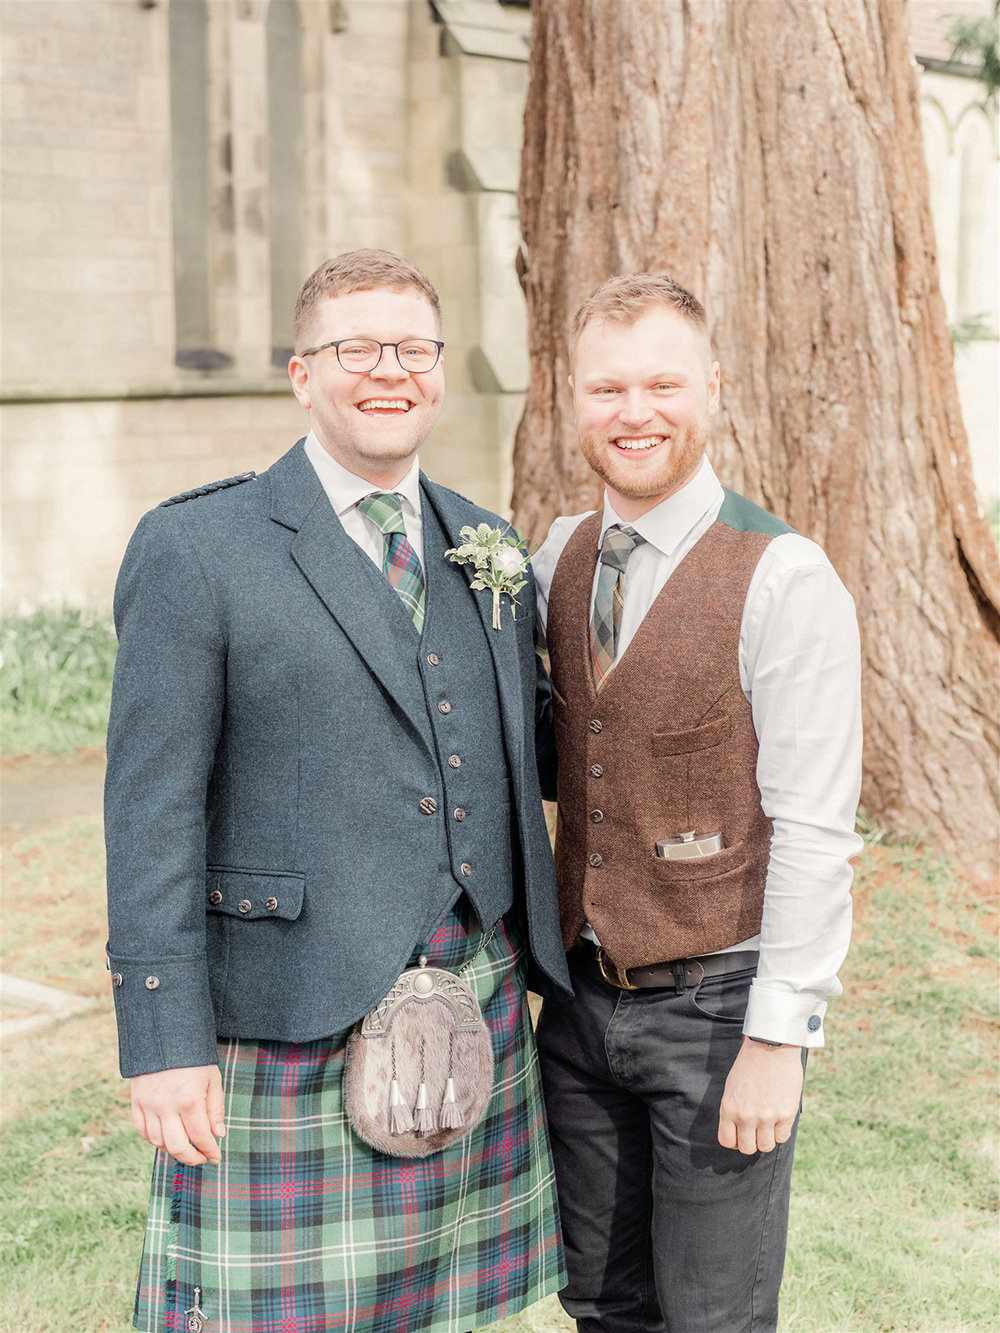 Groom Kilt Suit Tartan Tie Buttonhole Flowers Groomsman Lockdown Wedding Carn Patrick Photography